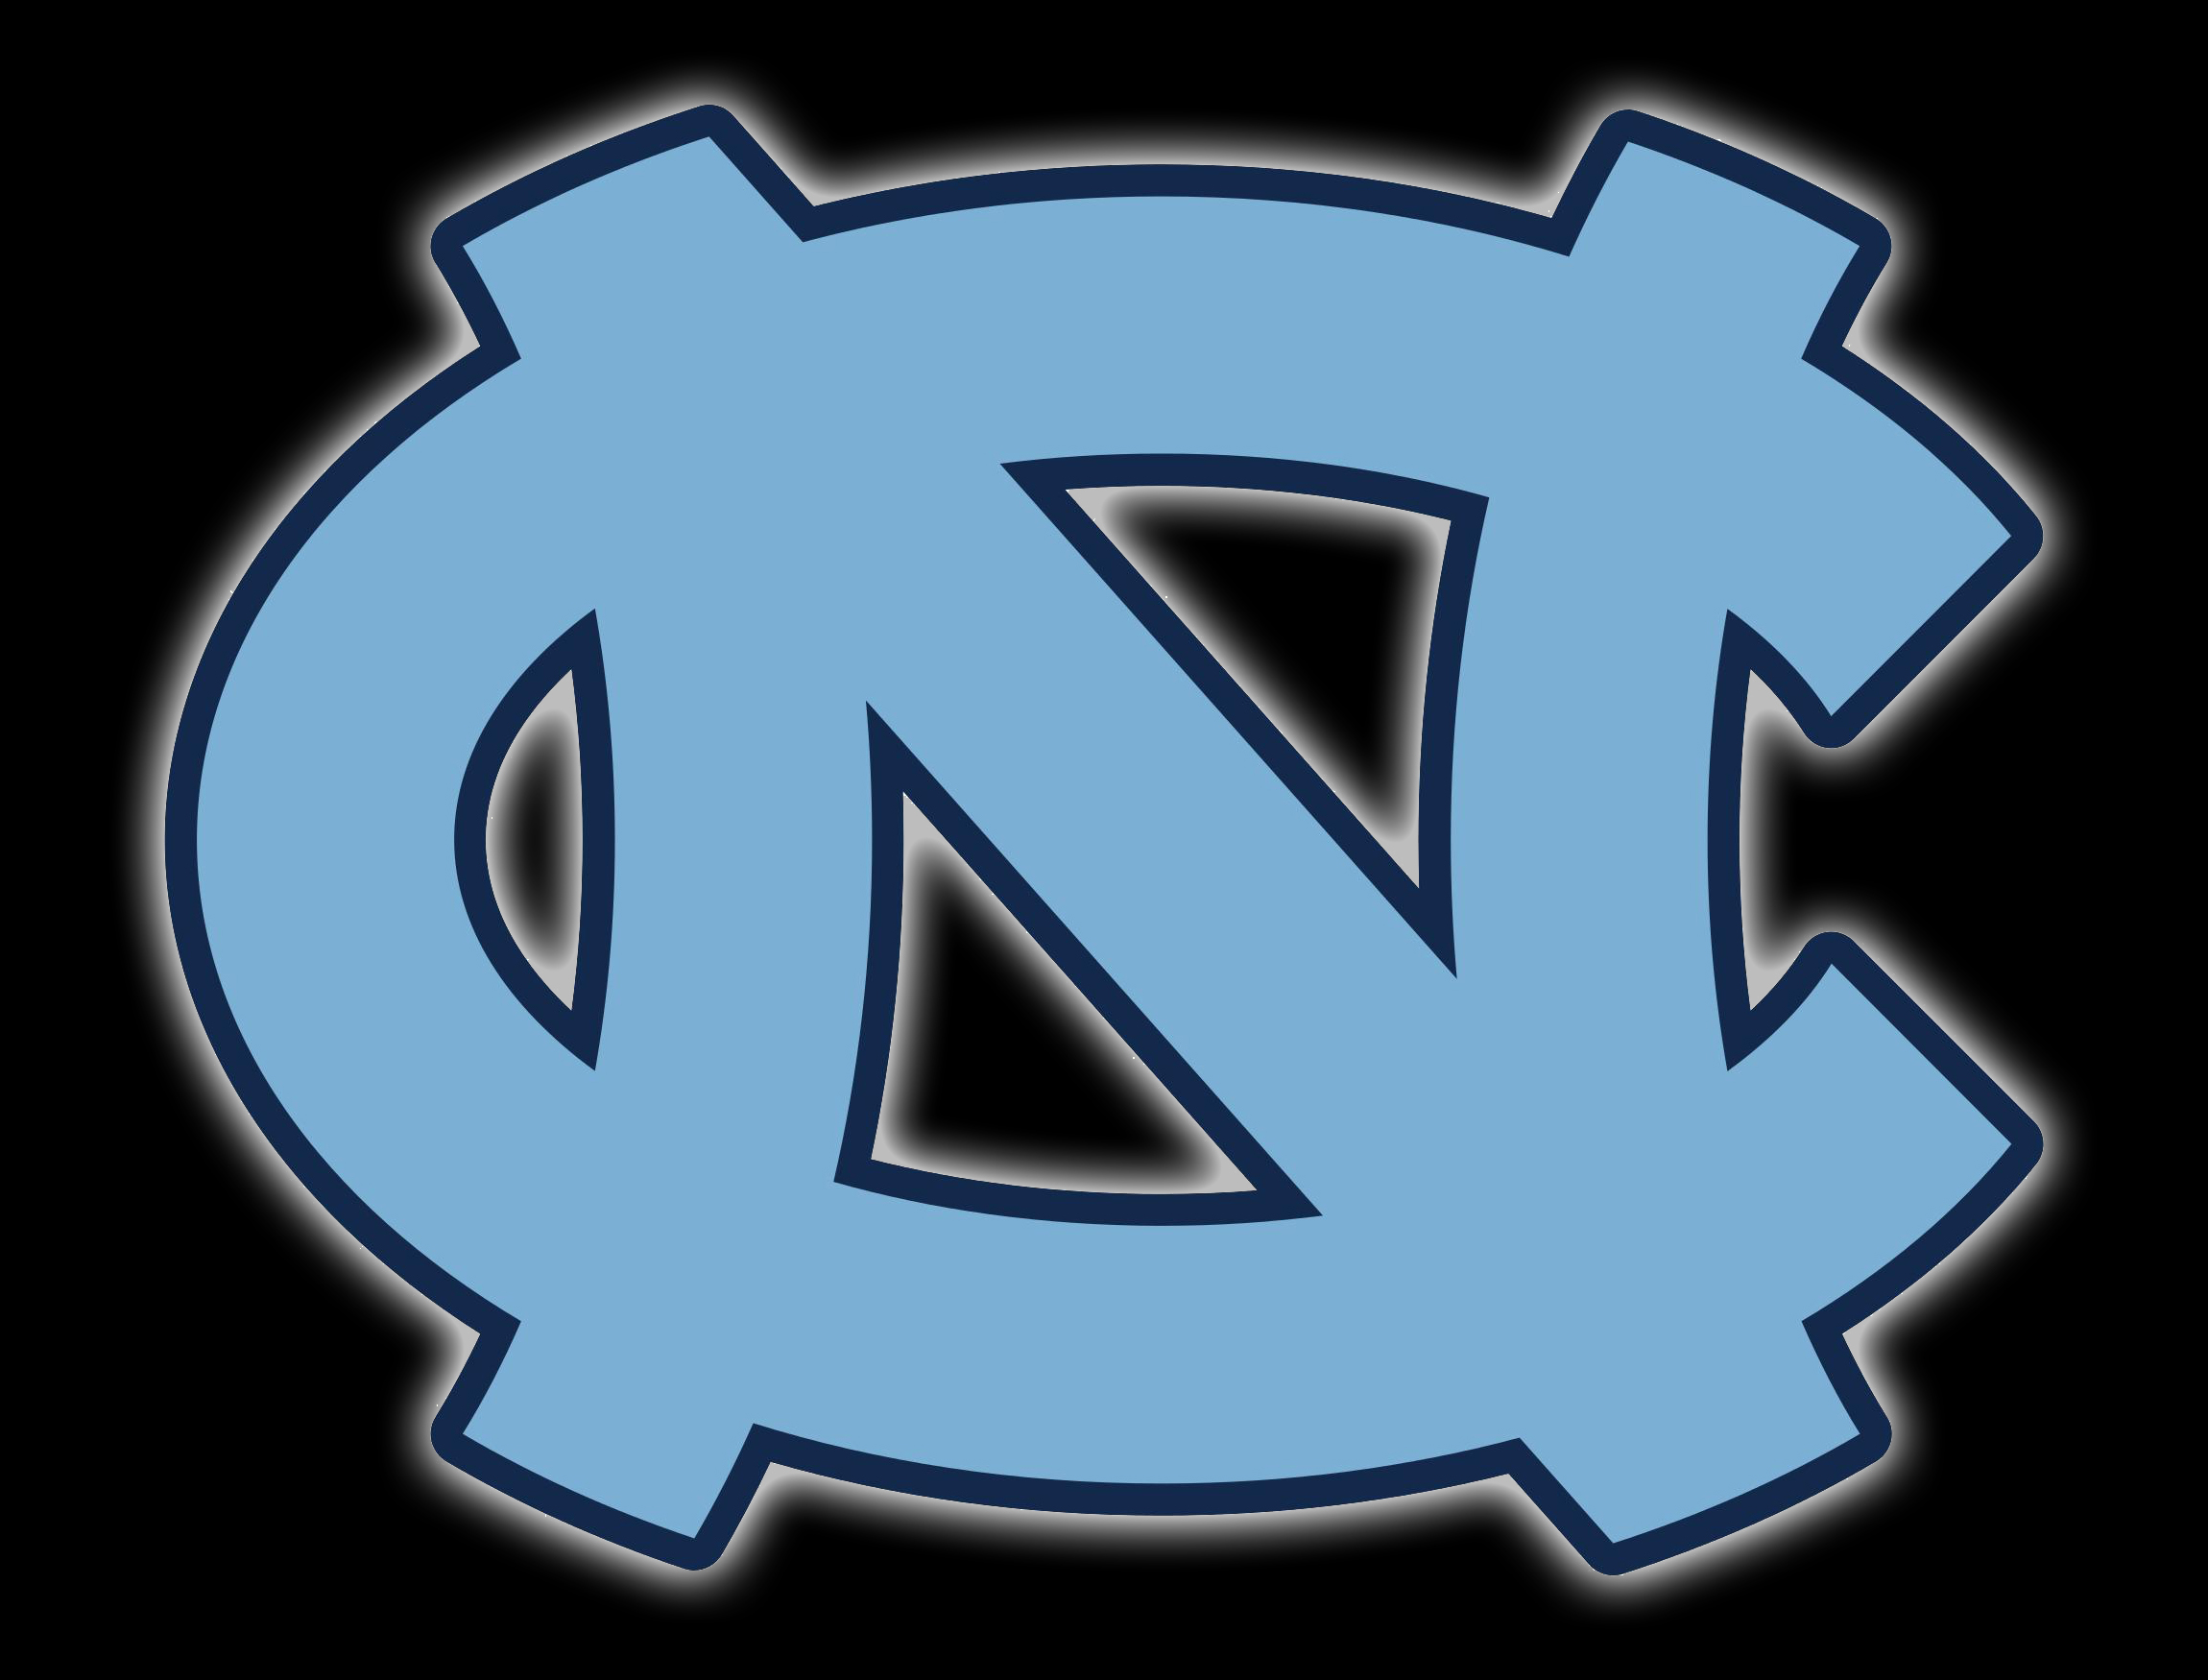 North carolina logo north carolina symbol meaning history and north carolina athletic symbols buycottarizona